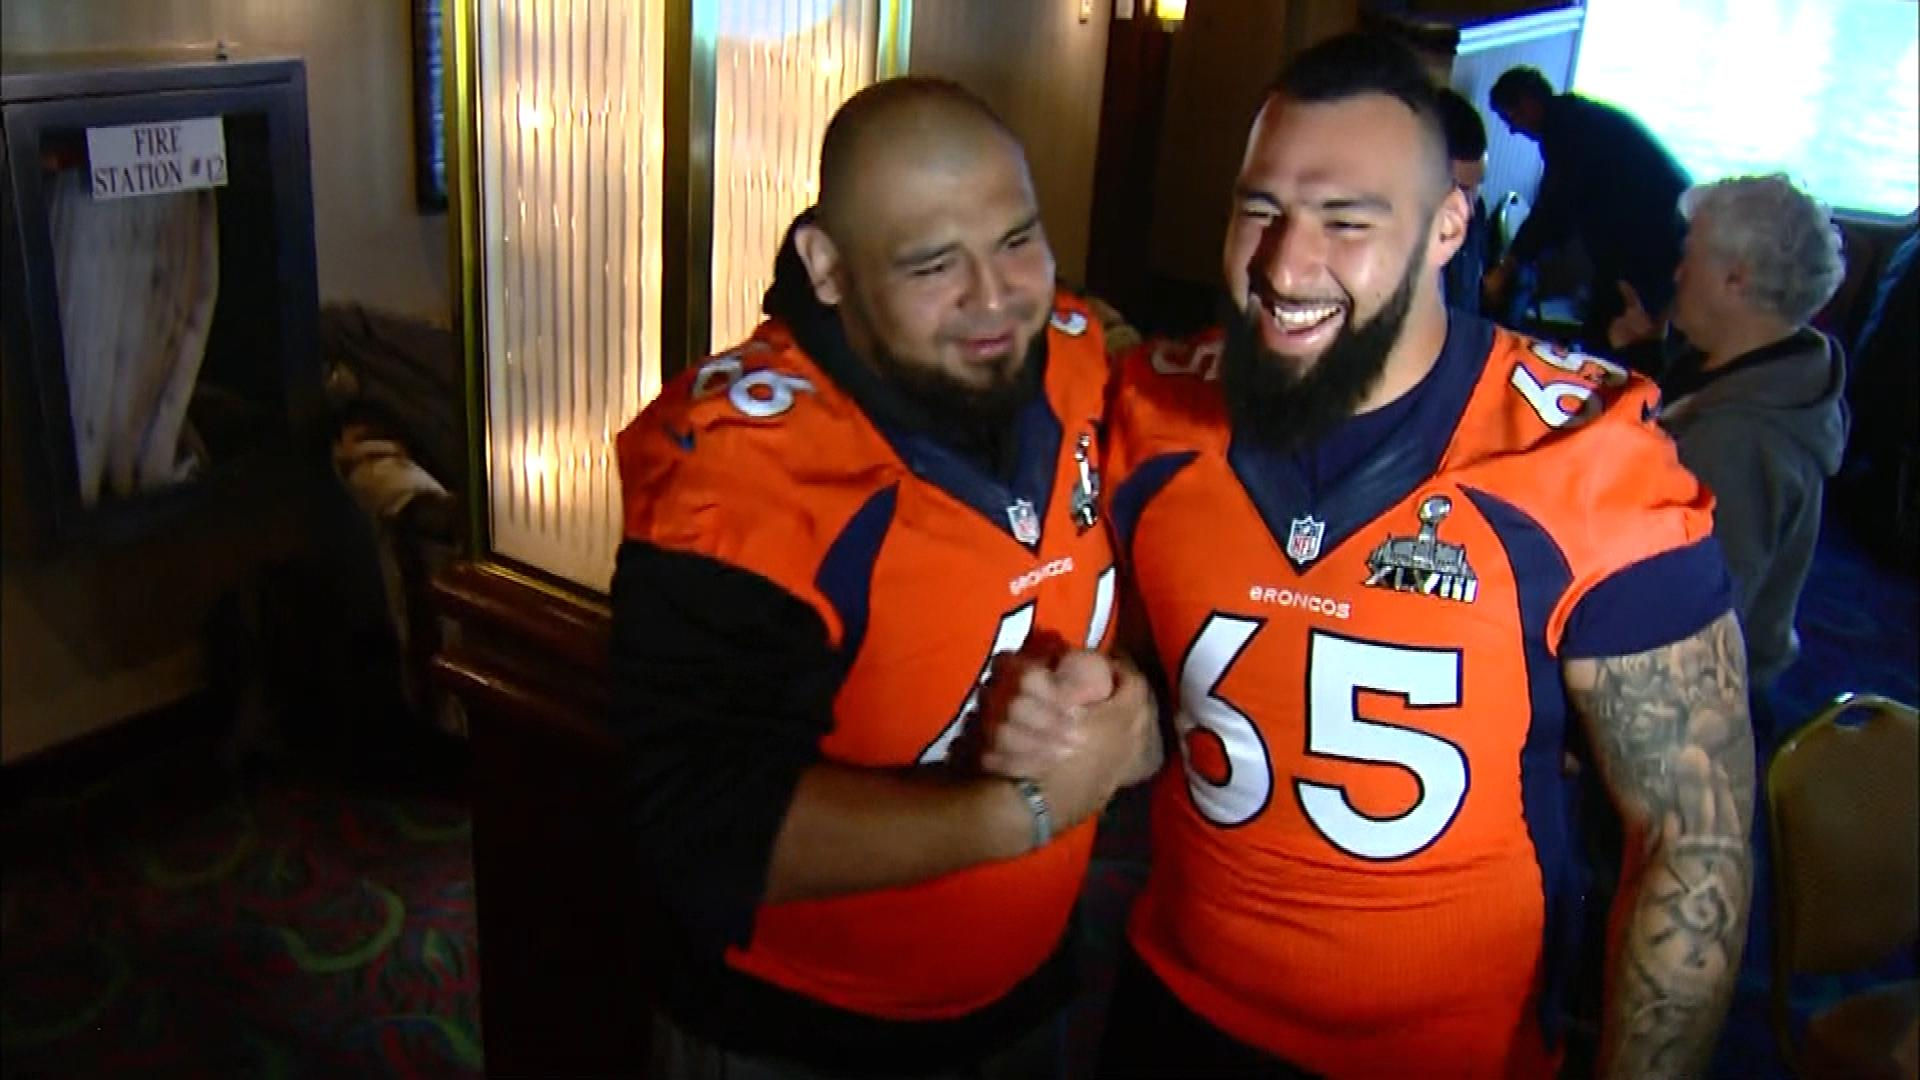 Manny Ramirez, left, and Louis Vasquez, right, in New Jersey before Super Bowl XLVIII. (credit: CBS)